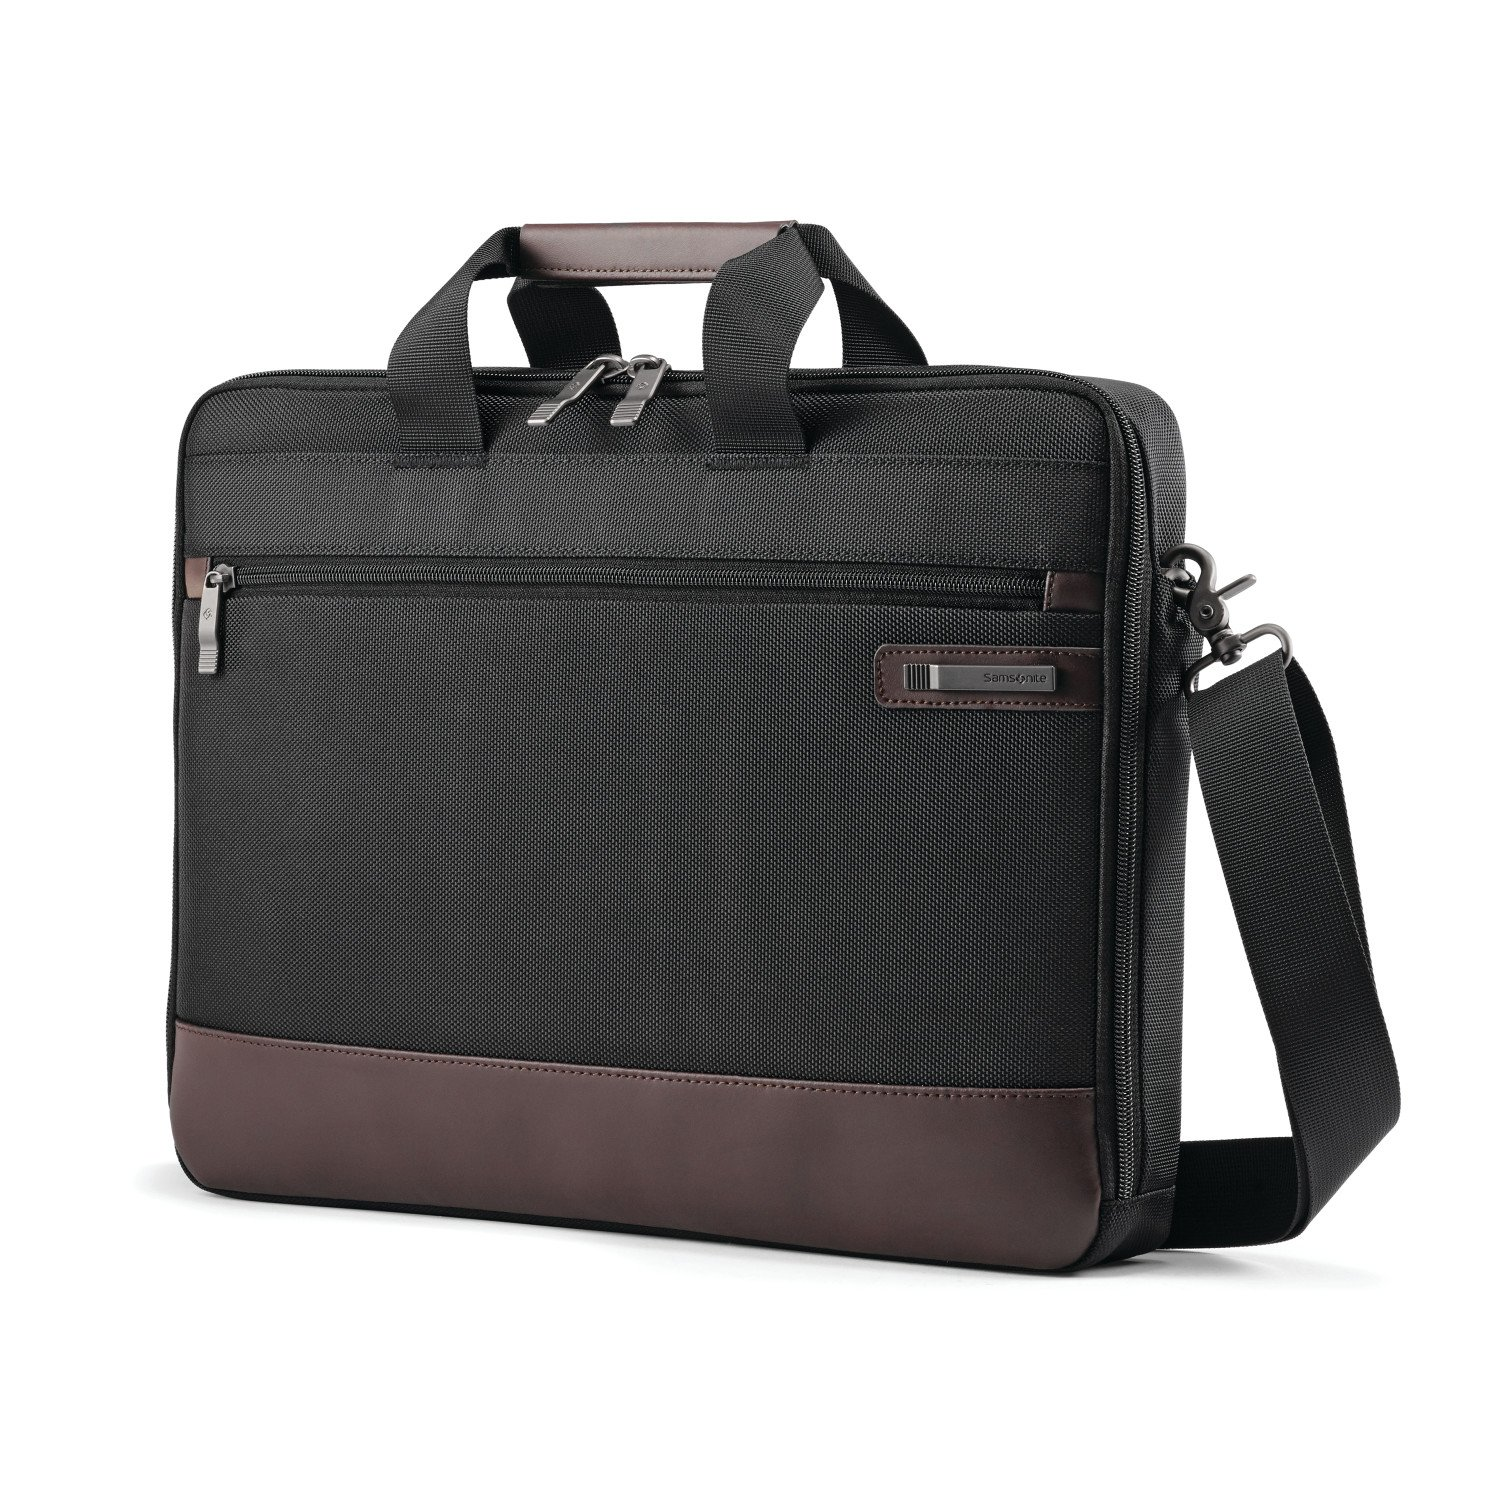 Samsonite Kombi Slimbrief Briefcase, Black/Brown Samsonite Corporation 92315-1051